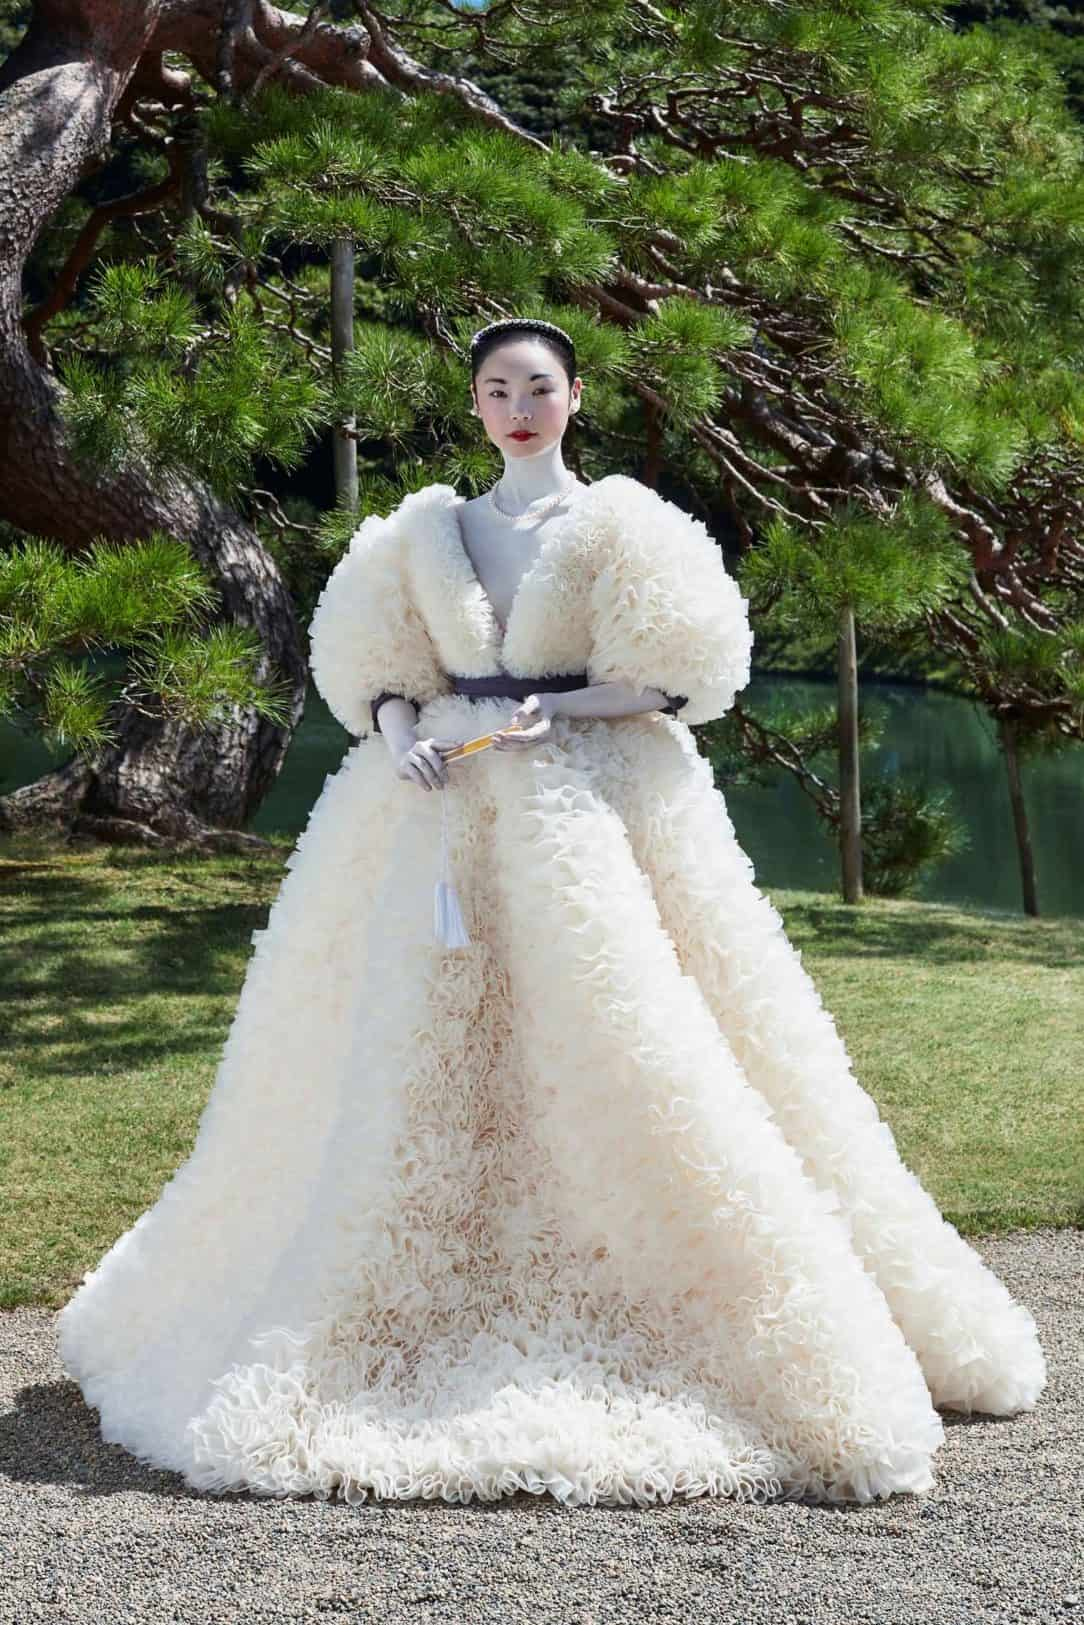 wedding dresses by Tomo Koizumi with puffy sleeves